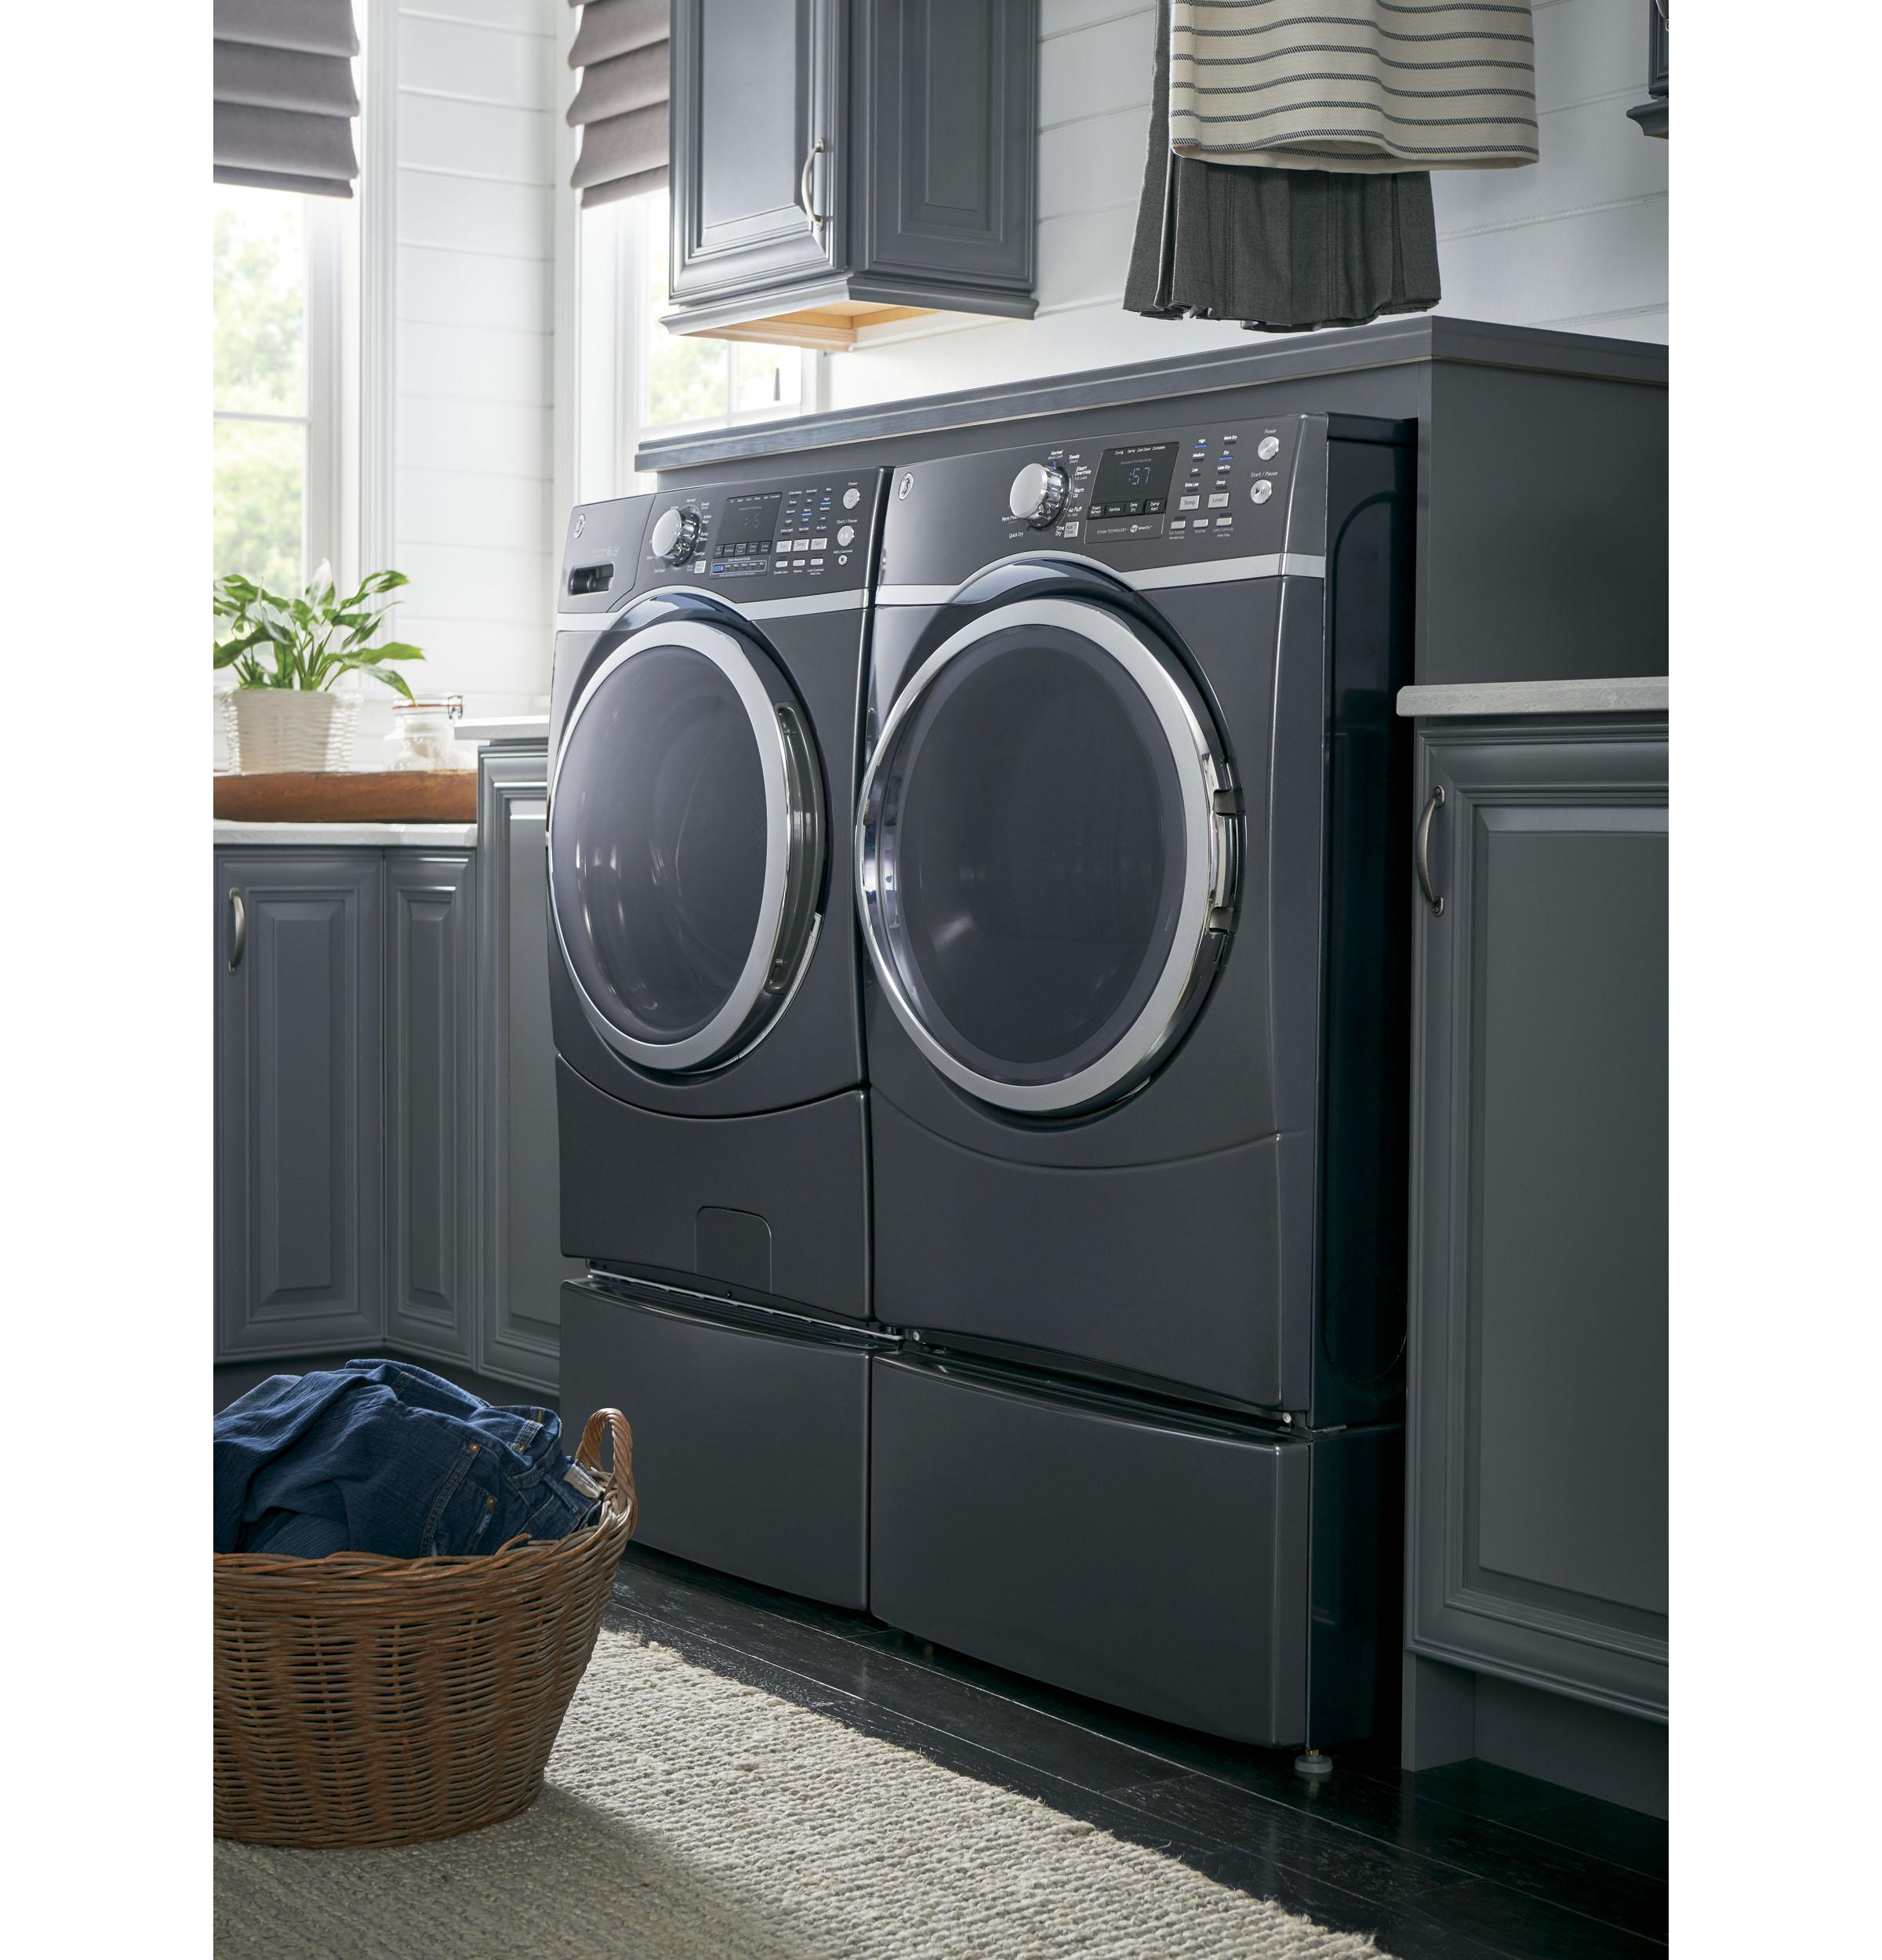 GE(R) ENERGY STAR(R) 4.5 DOE Cu. Ft. Capacity Frontload Washer with steam